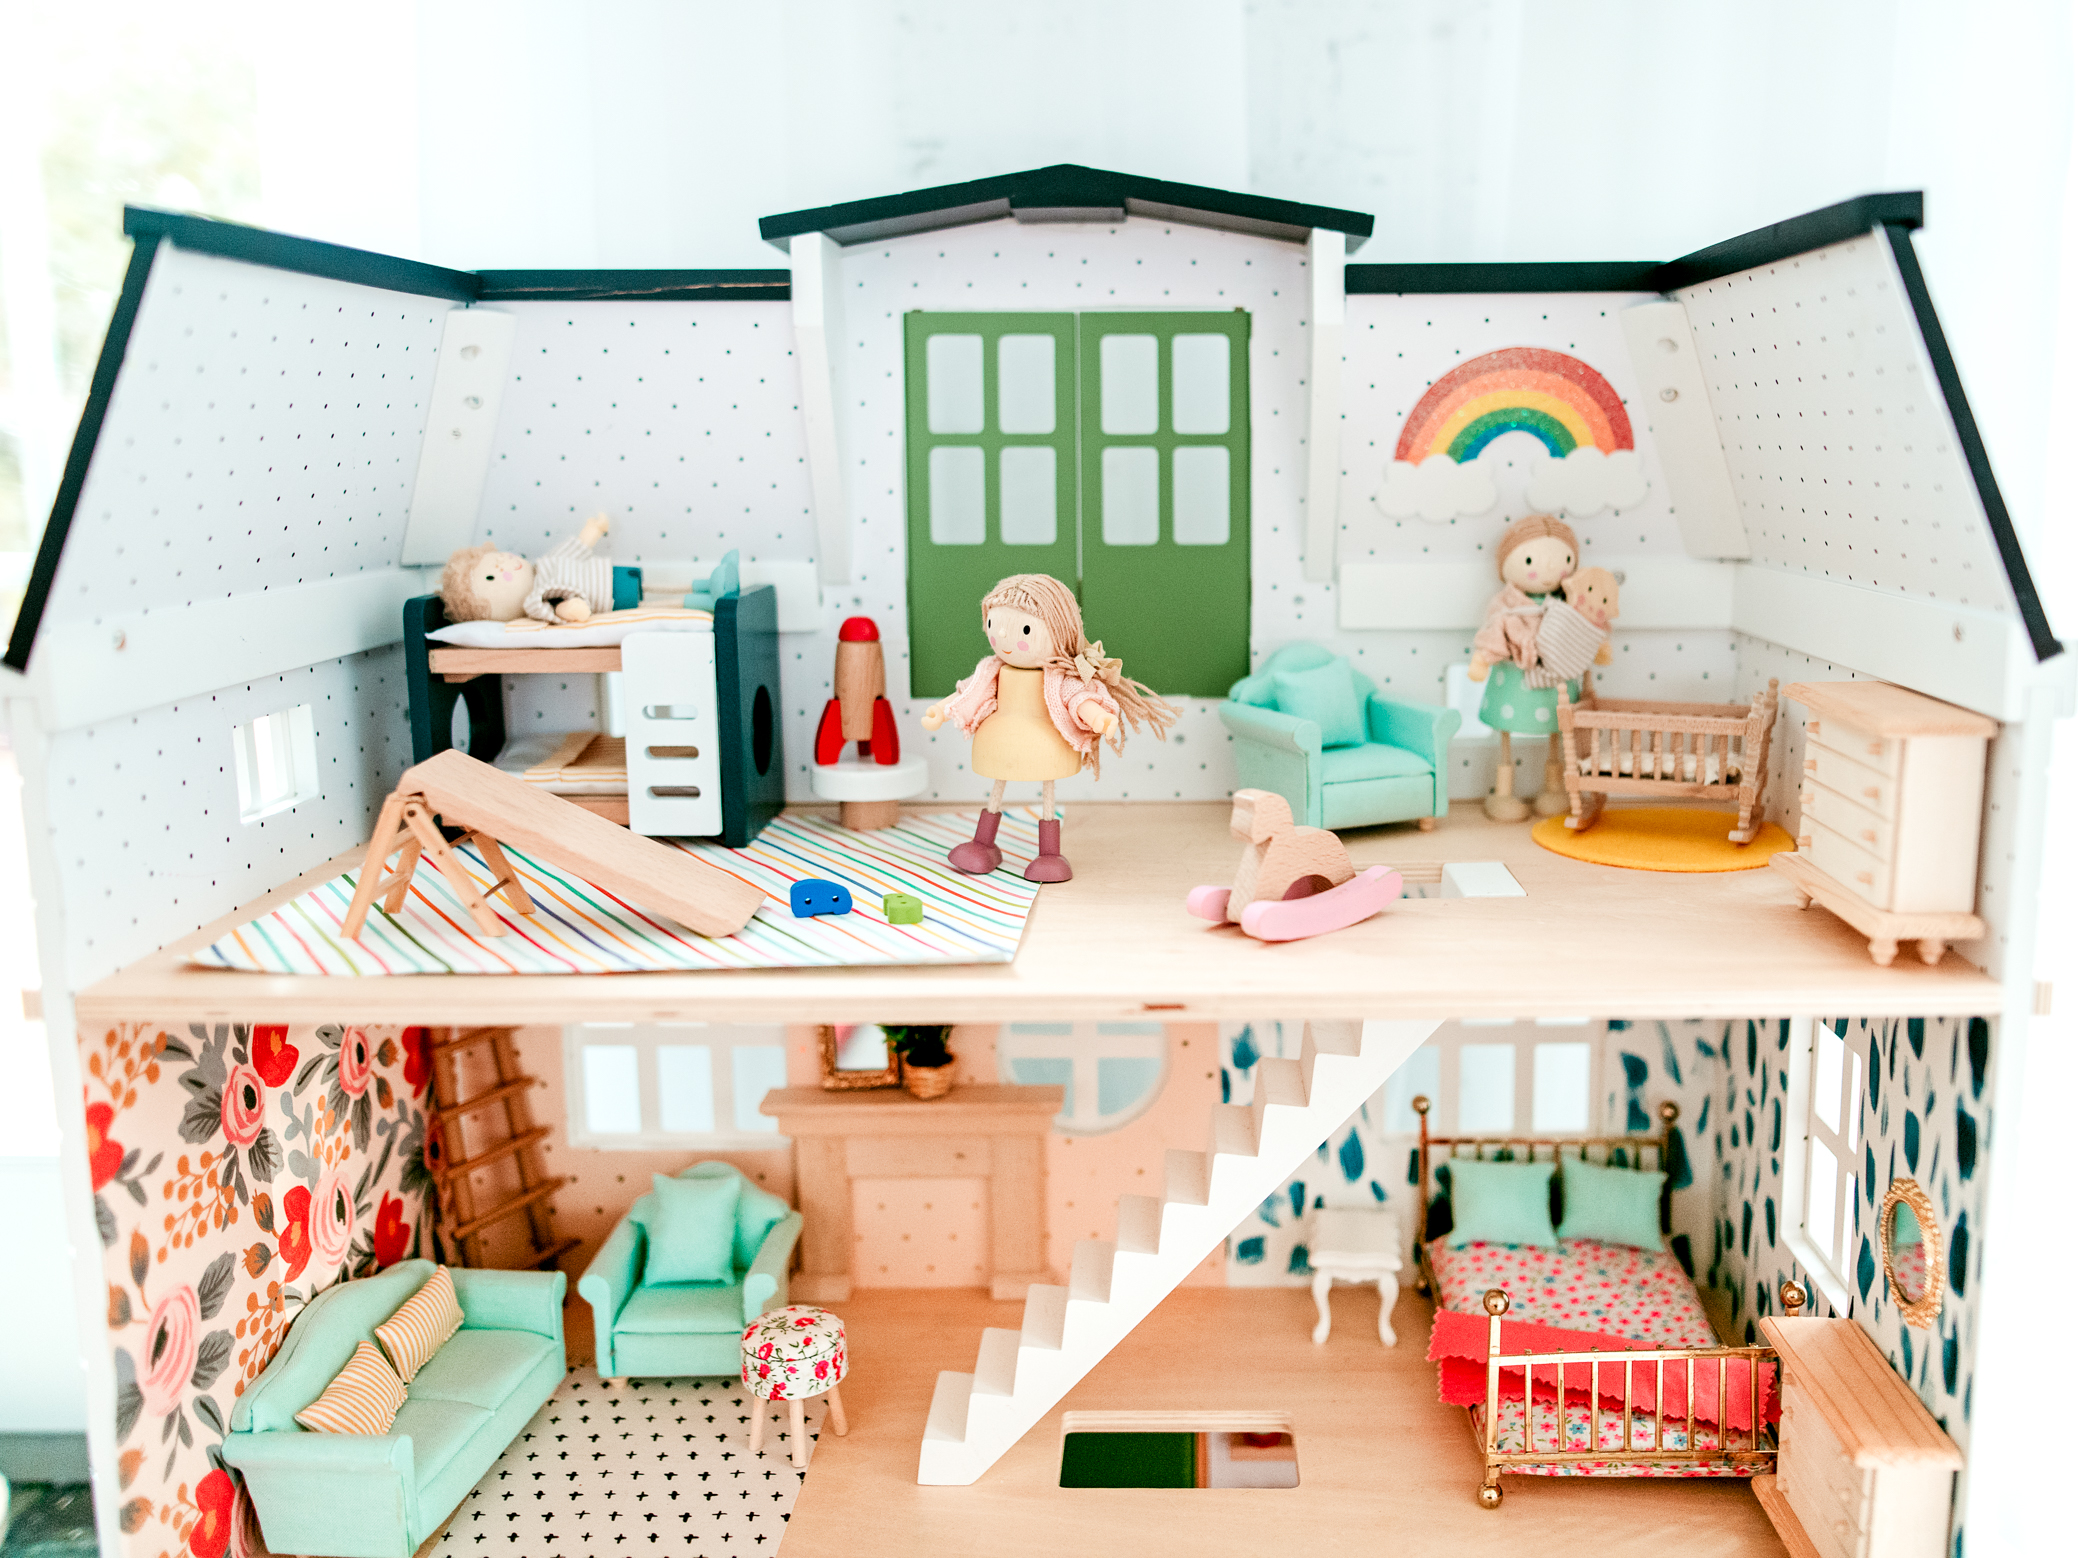 Hearth and Hand Dollhouse ; come see how I turned a plain dollhouse into a bright and colorful one of a kind piece!